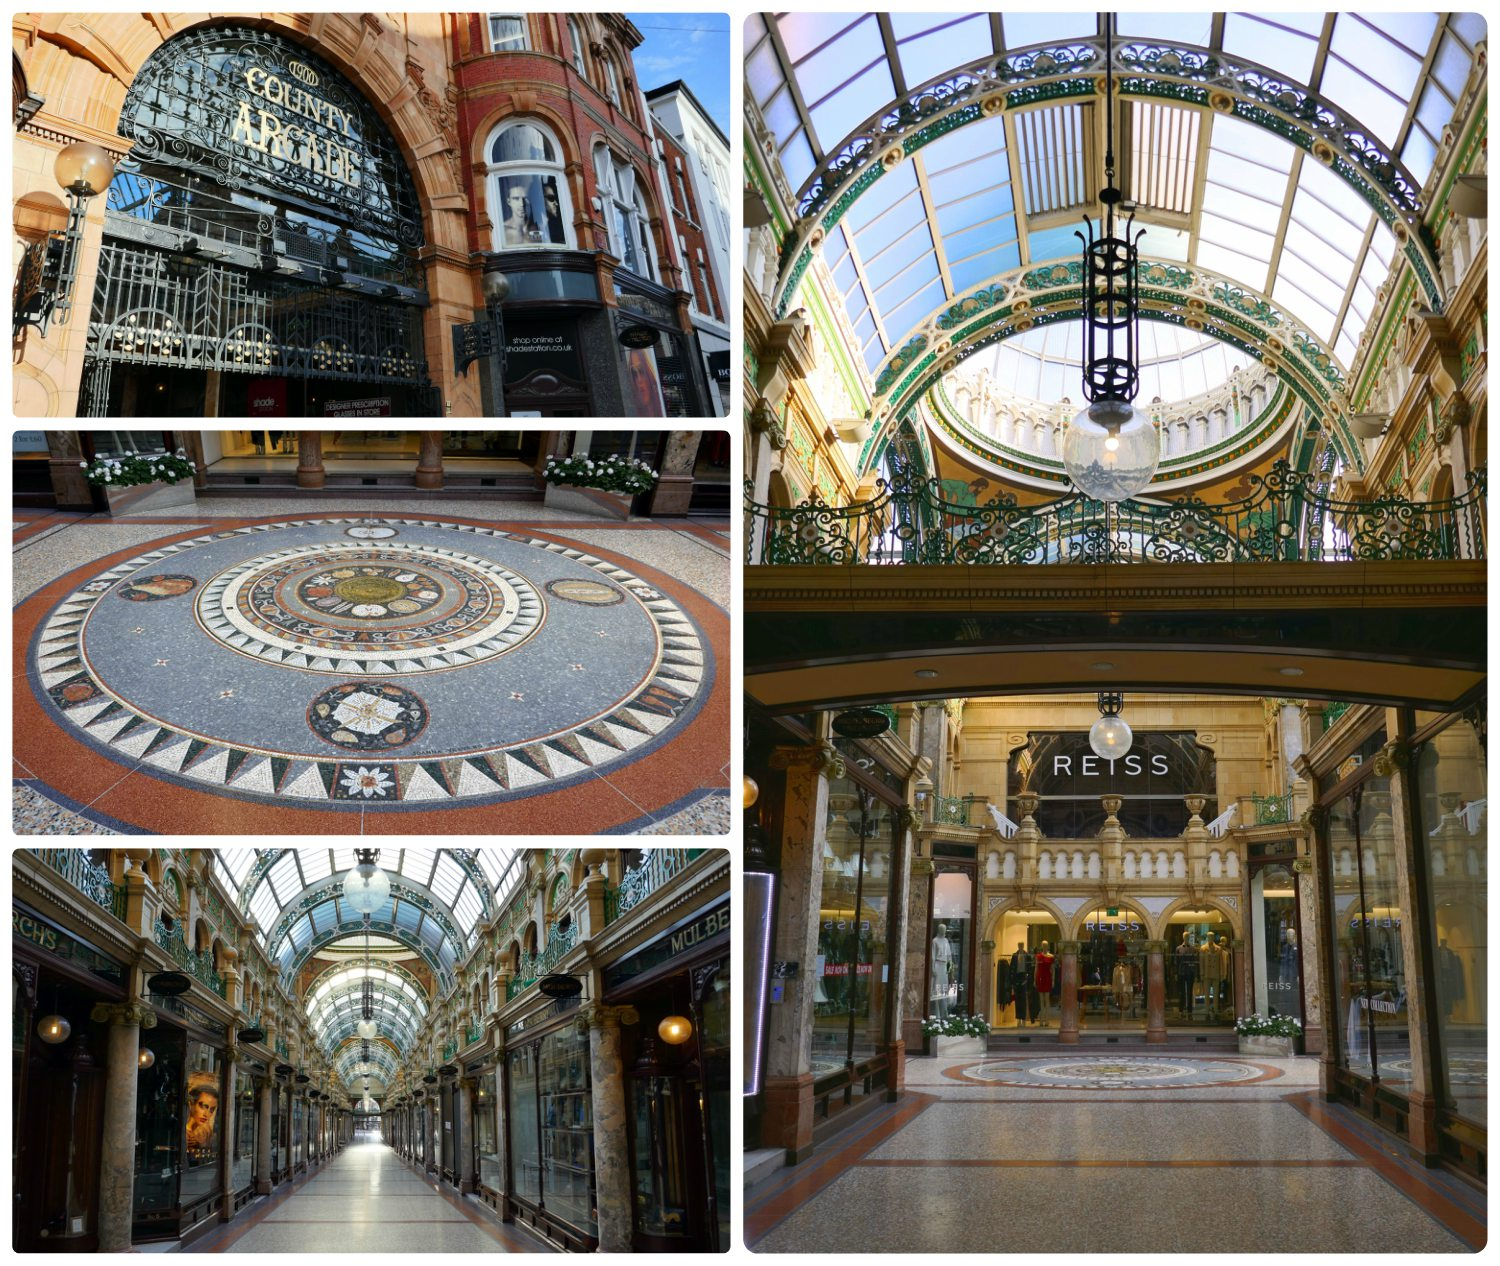 Victoria Quarter may be the most well known arcade in Leeds, but we favored the parallel arcade, County Arcade.